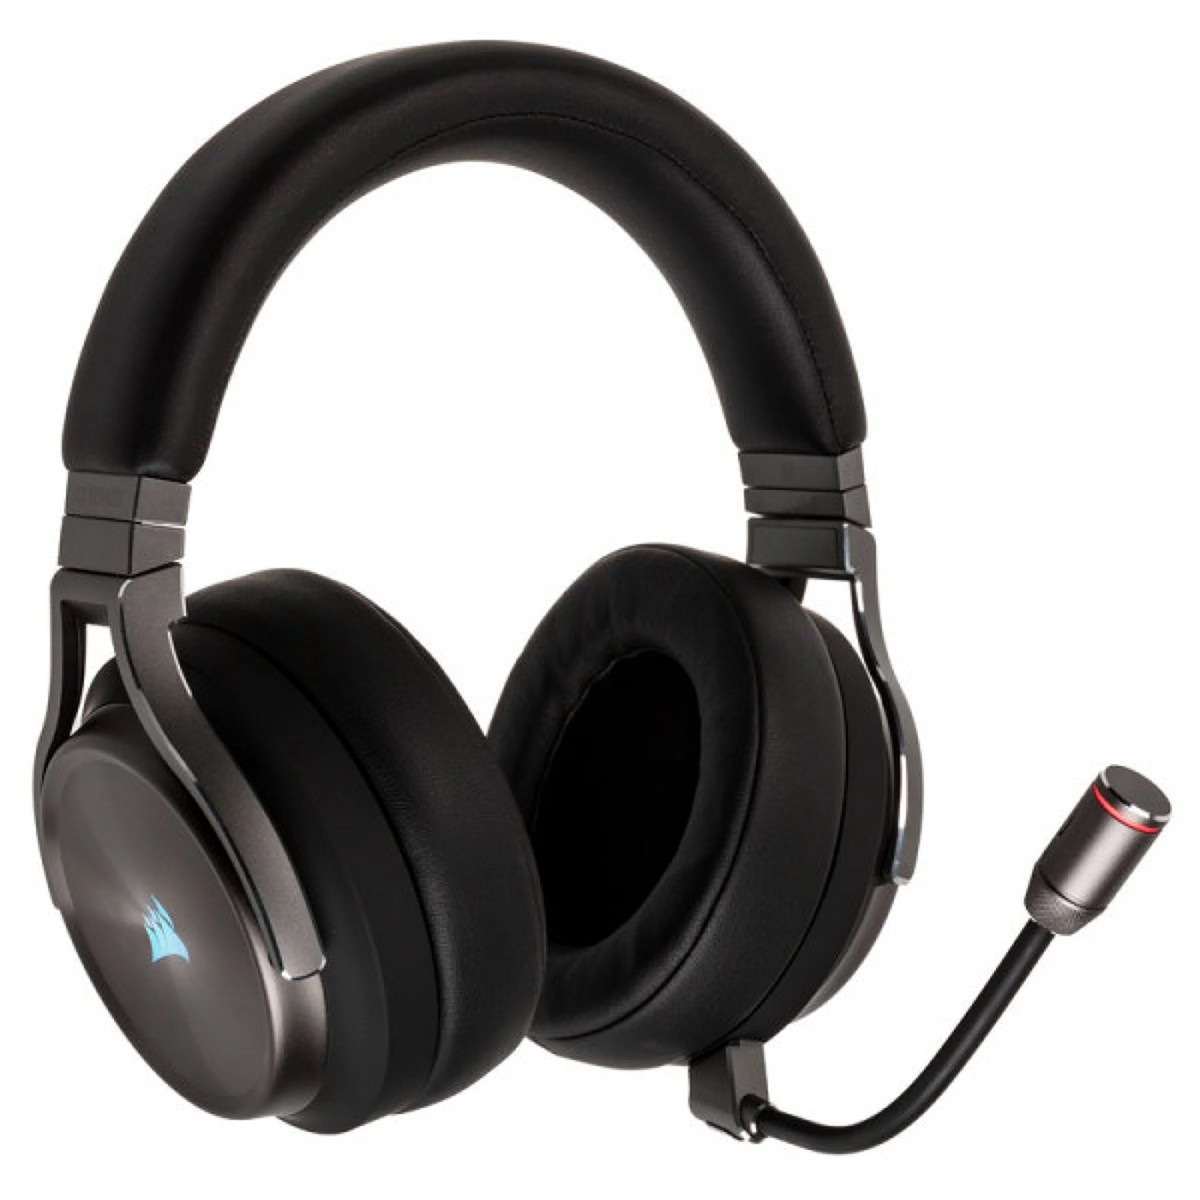 Headset Gamer Corsair Virtuoso, USB + Wireless + 3.5mm, PC, PlayStation 4/5, Dispositivos Móveis, RGB, Metallic, CA-9011180-NA